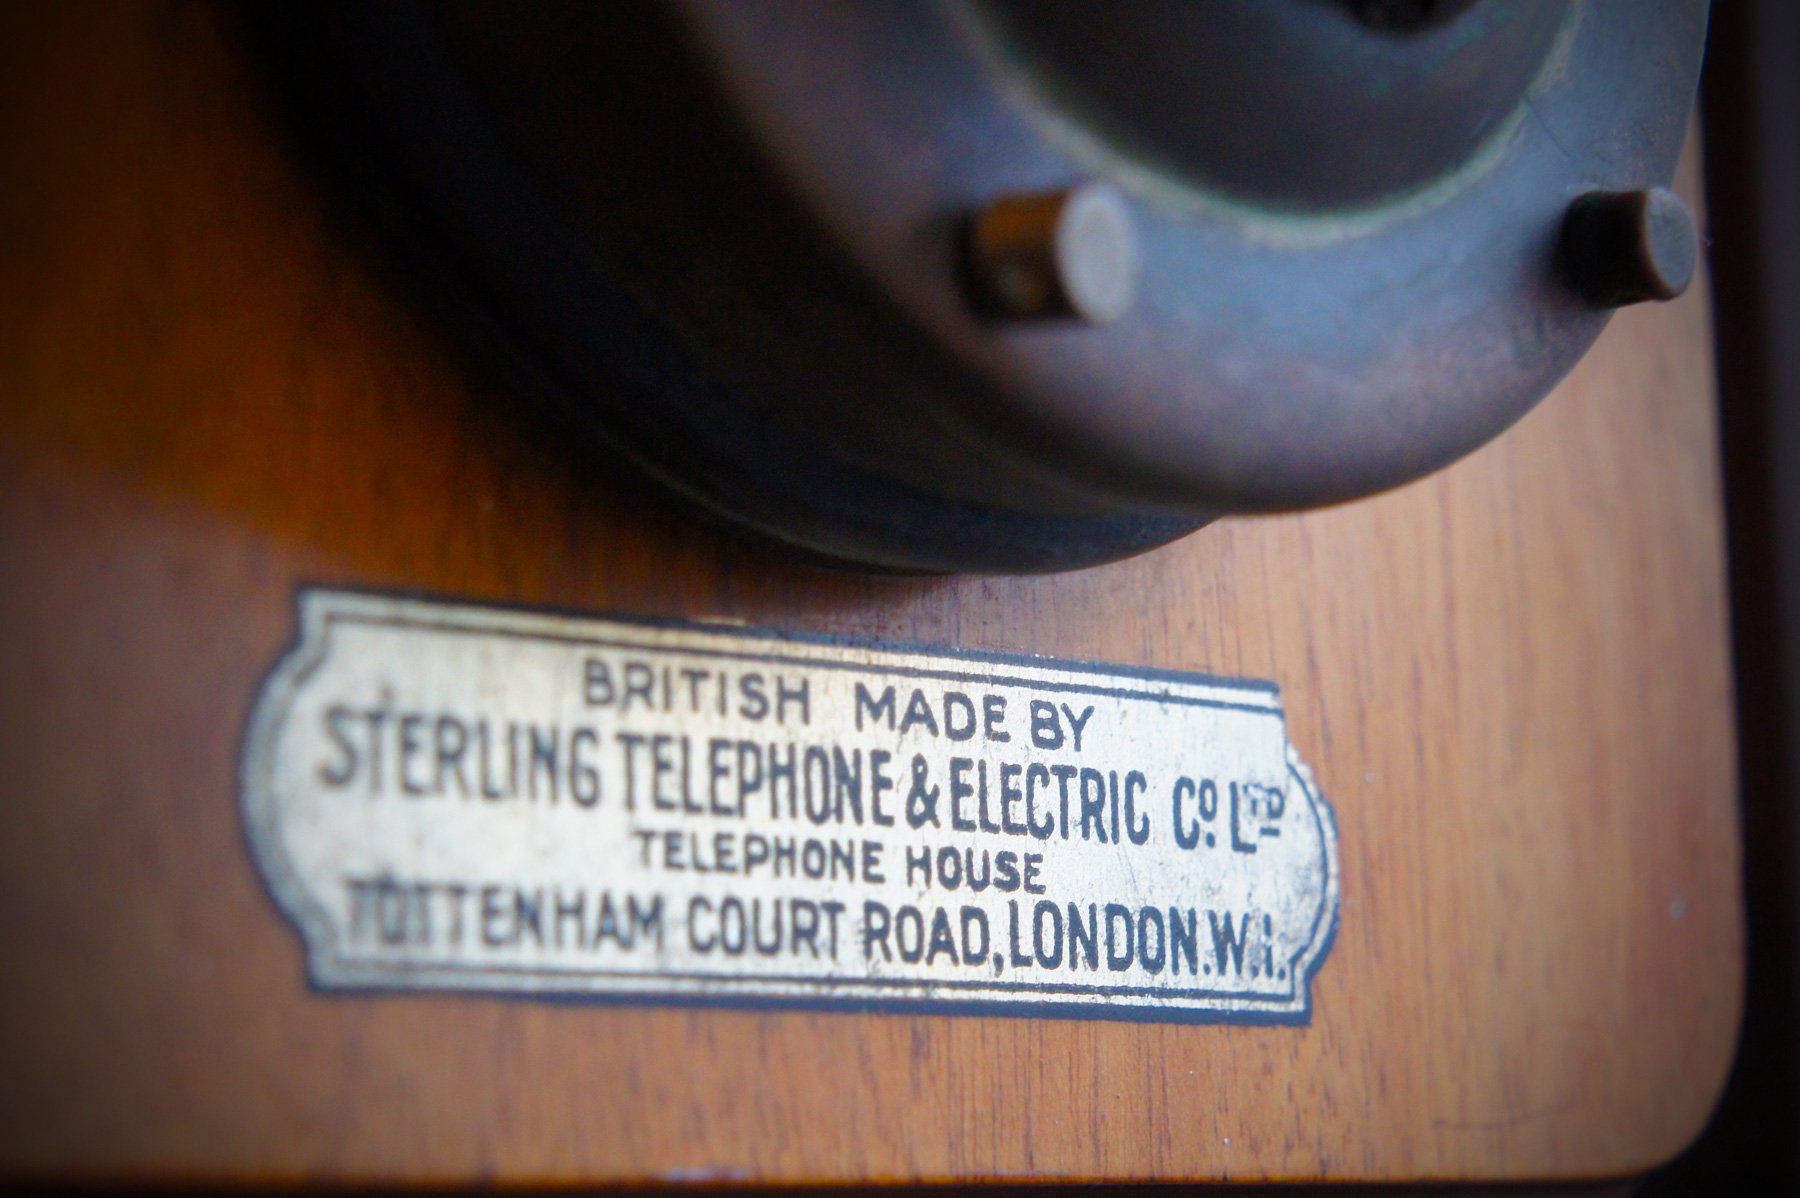 Sterling_telephone_and_electric_company